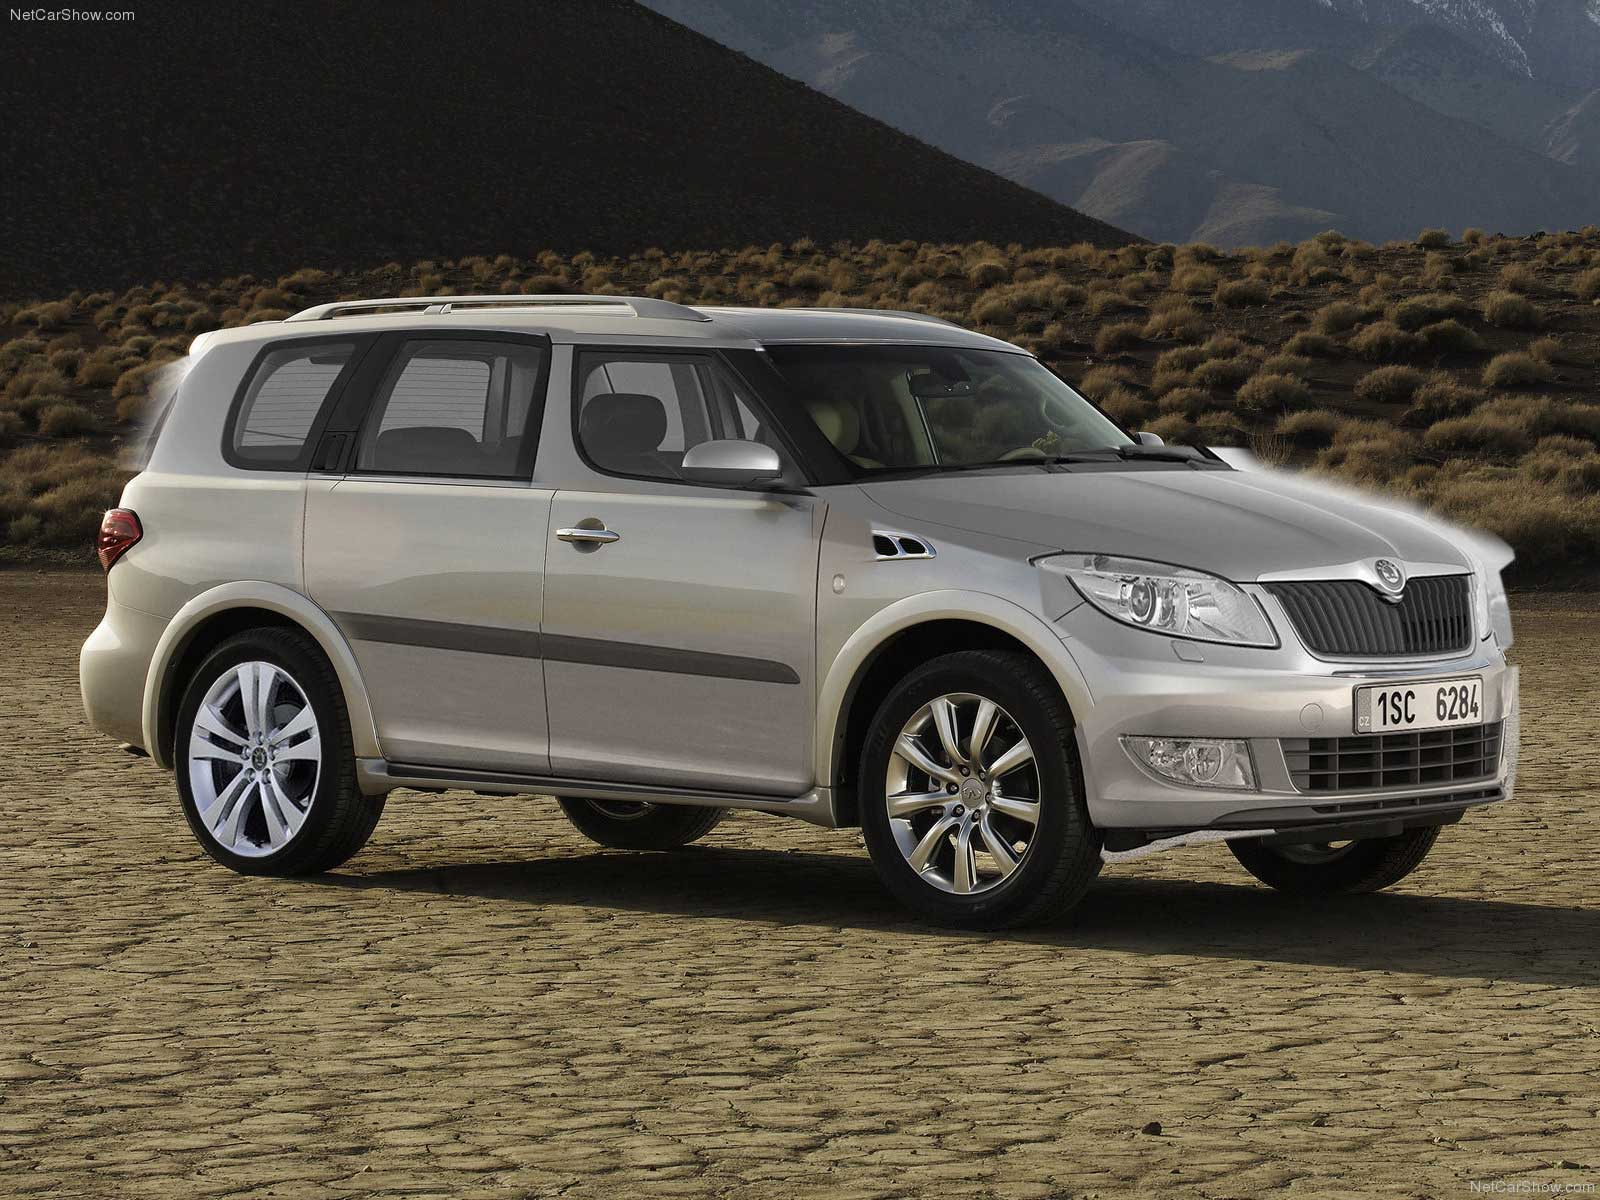 Skoda SUV HD Wallpapers Free Download